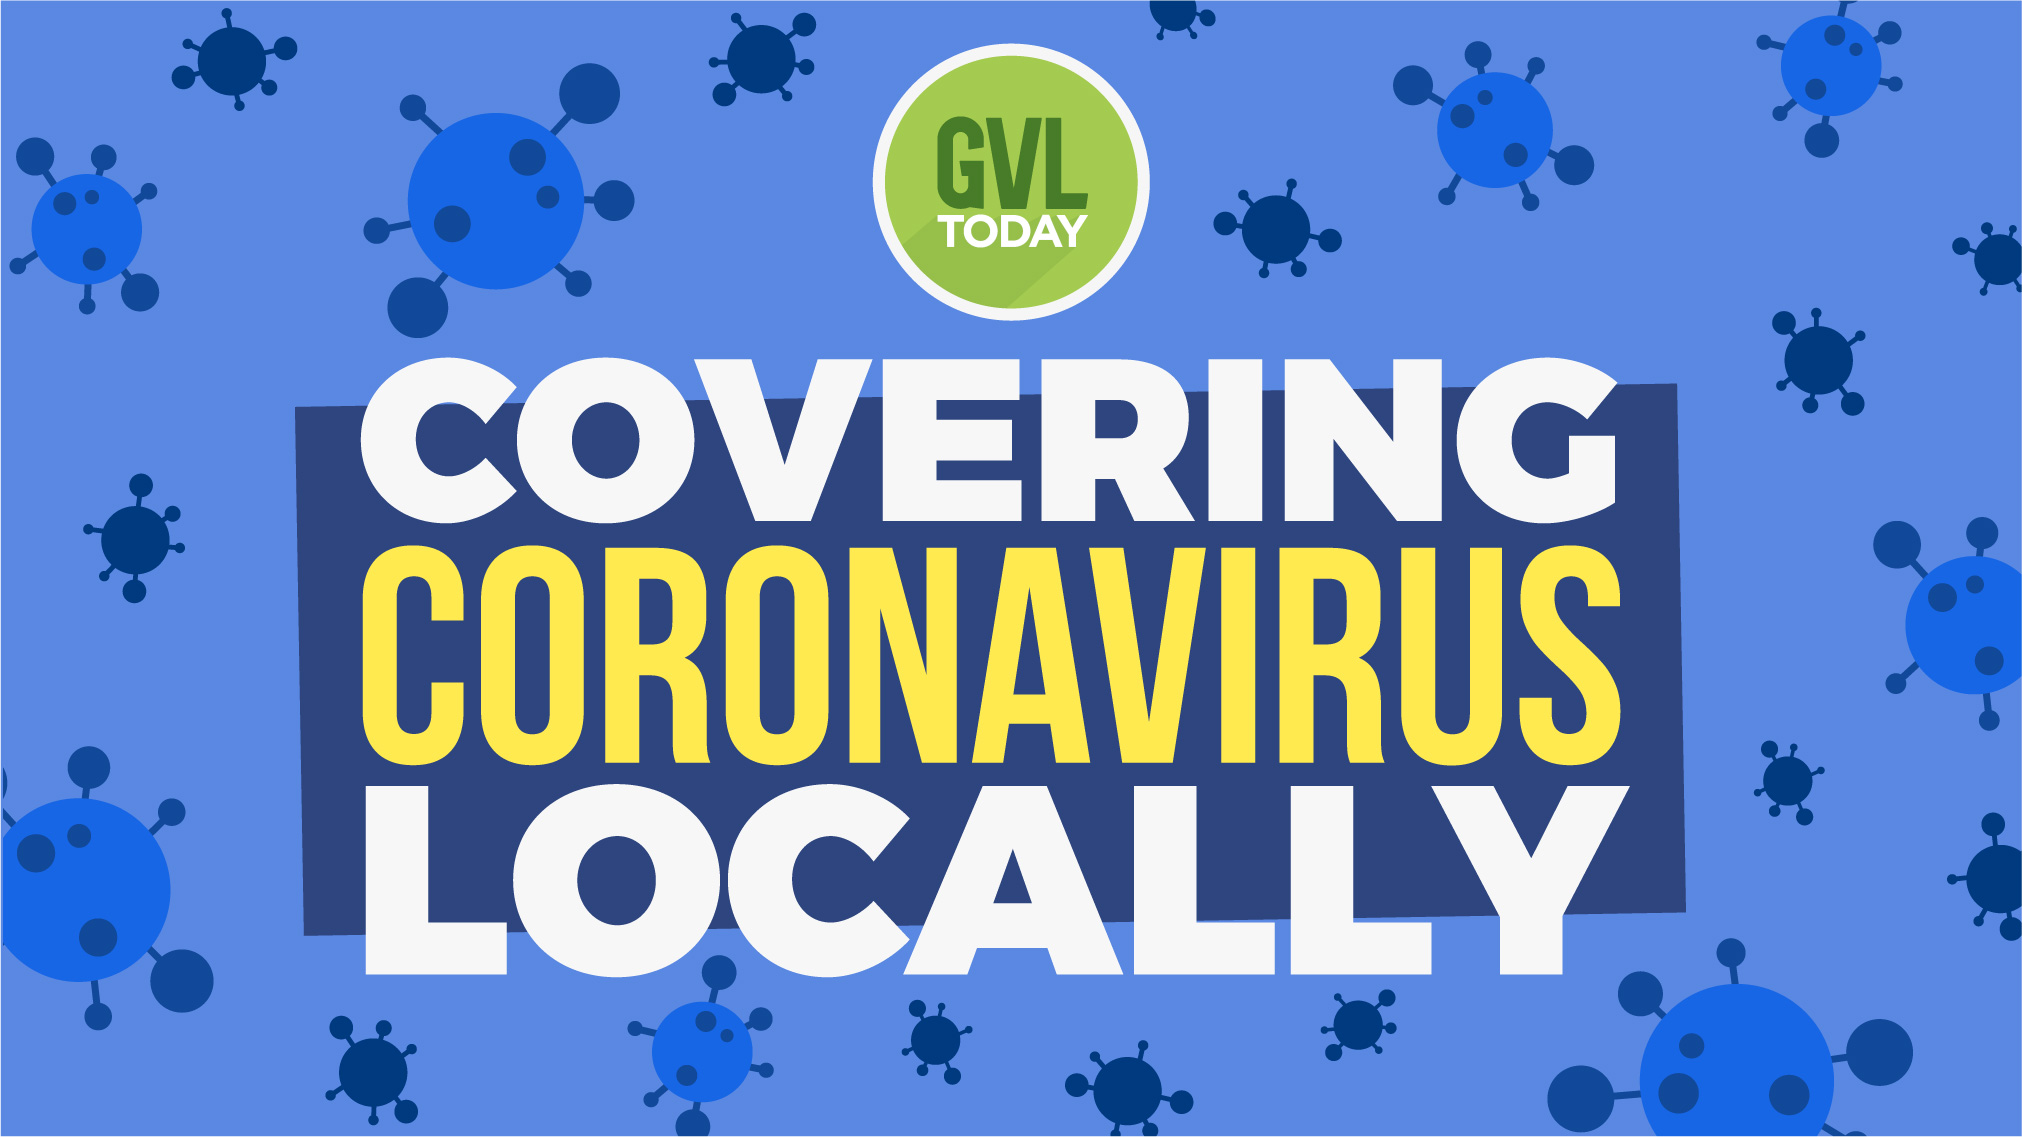 Coronavirus The Latest Local Updates Cancellations Resources More Gvltoday